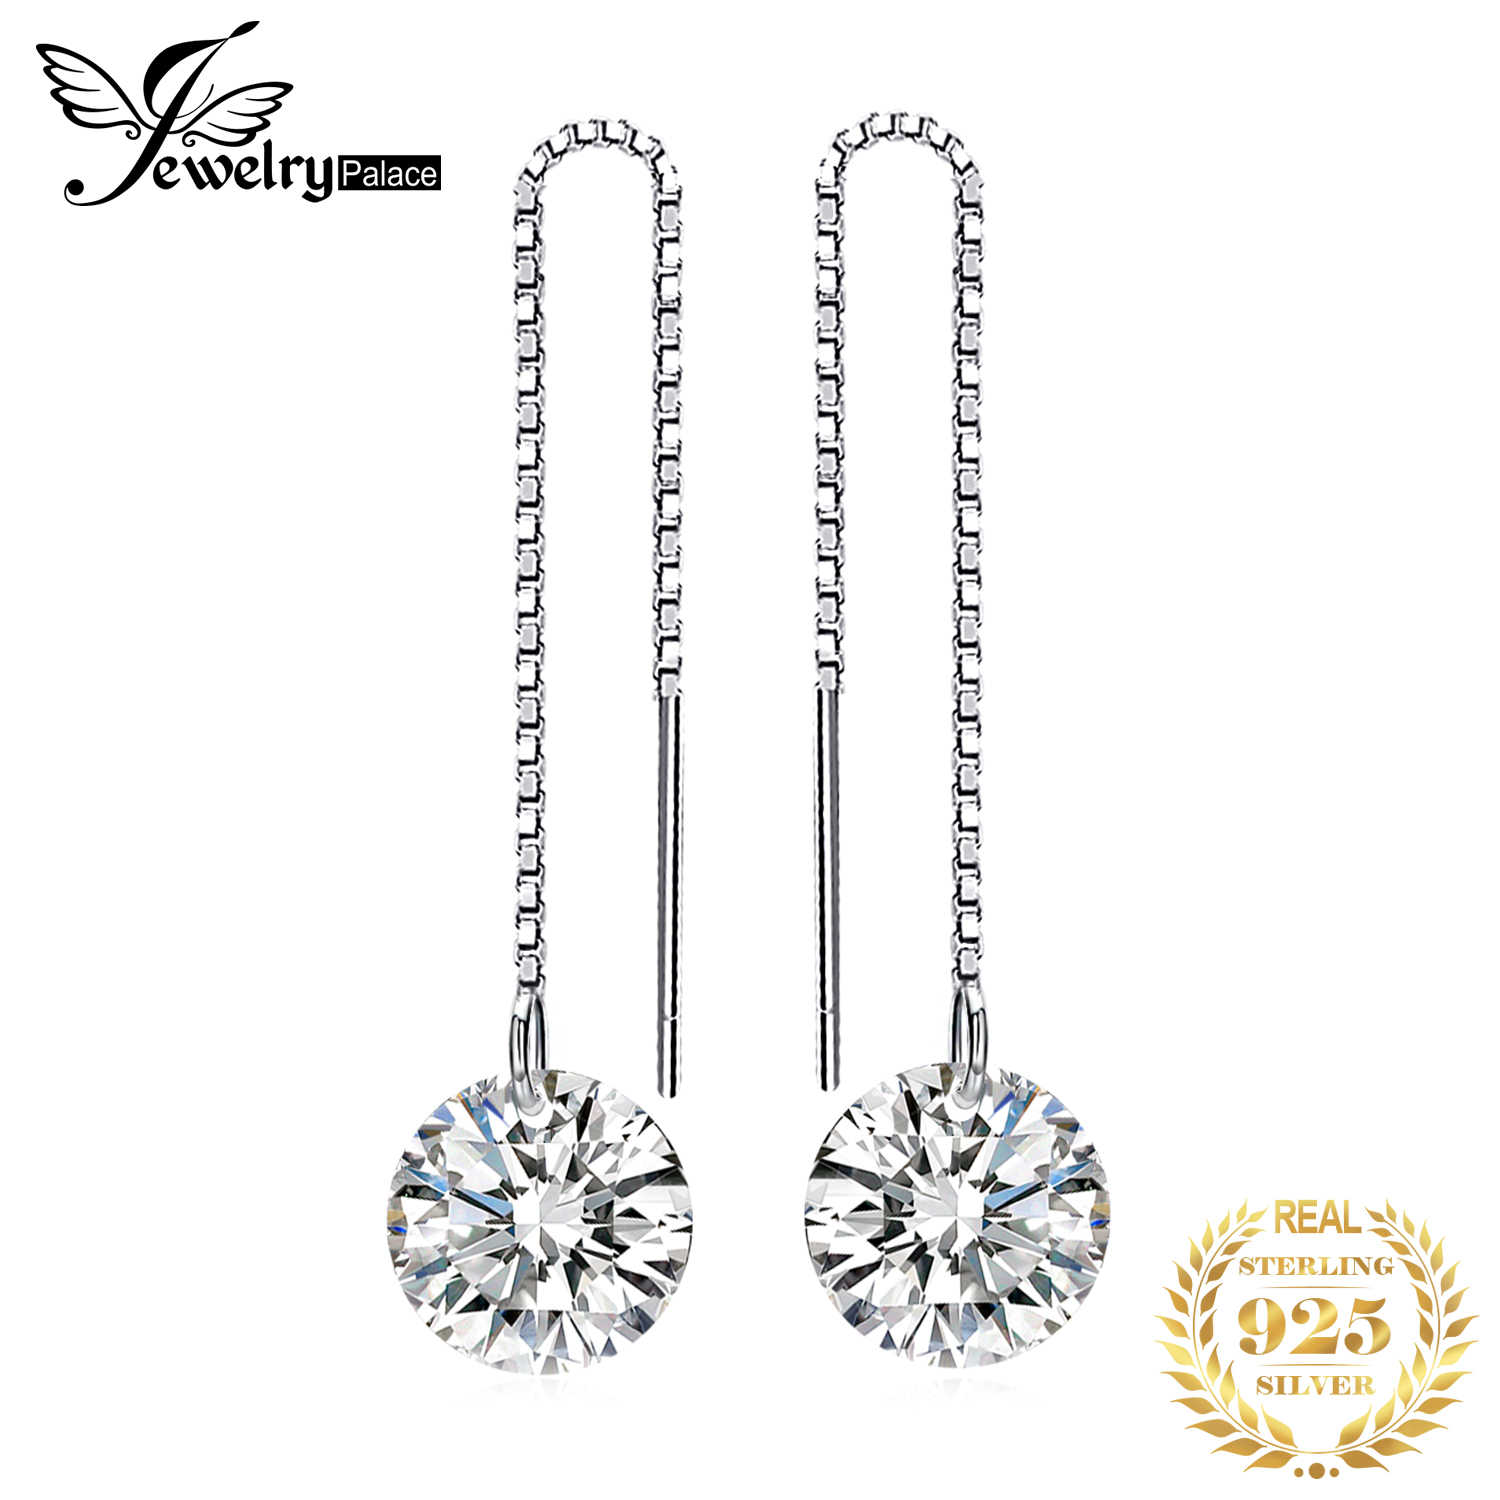 JewelryPalace 925 Sterling Silver Cubic Zirconia CZ Long Drop Earrings For Women Korean Earrings 2019 Earings Fashion Jewelry